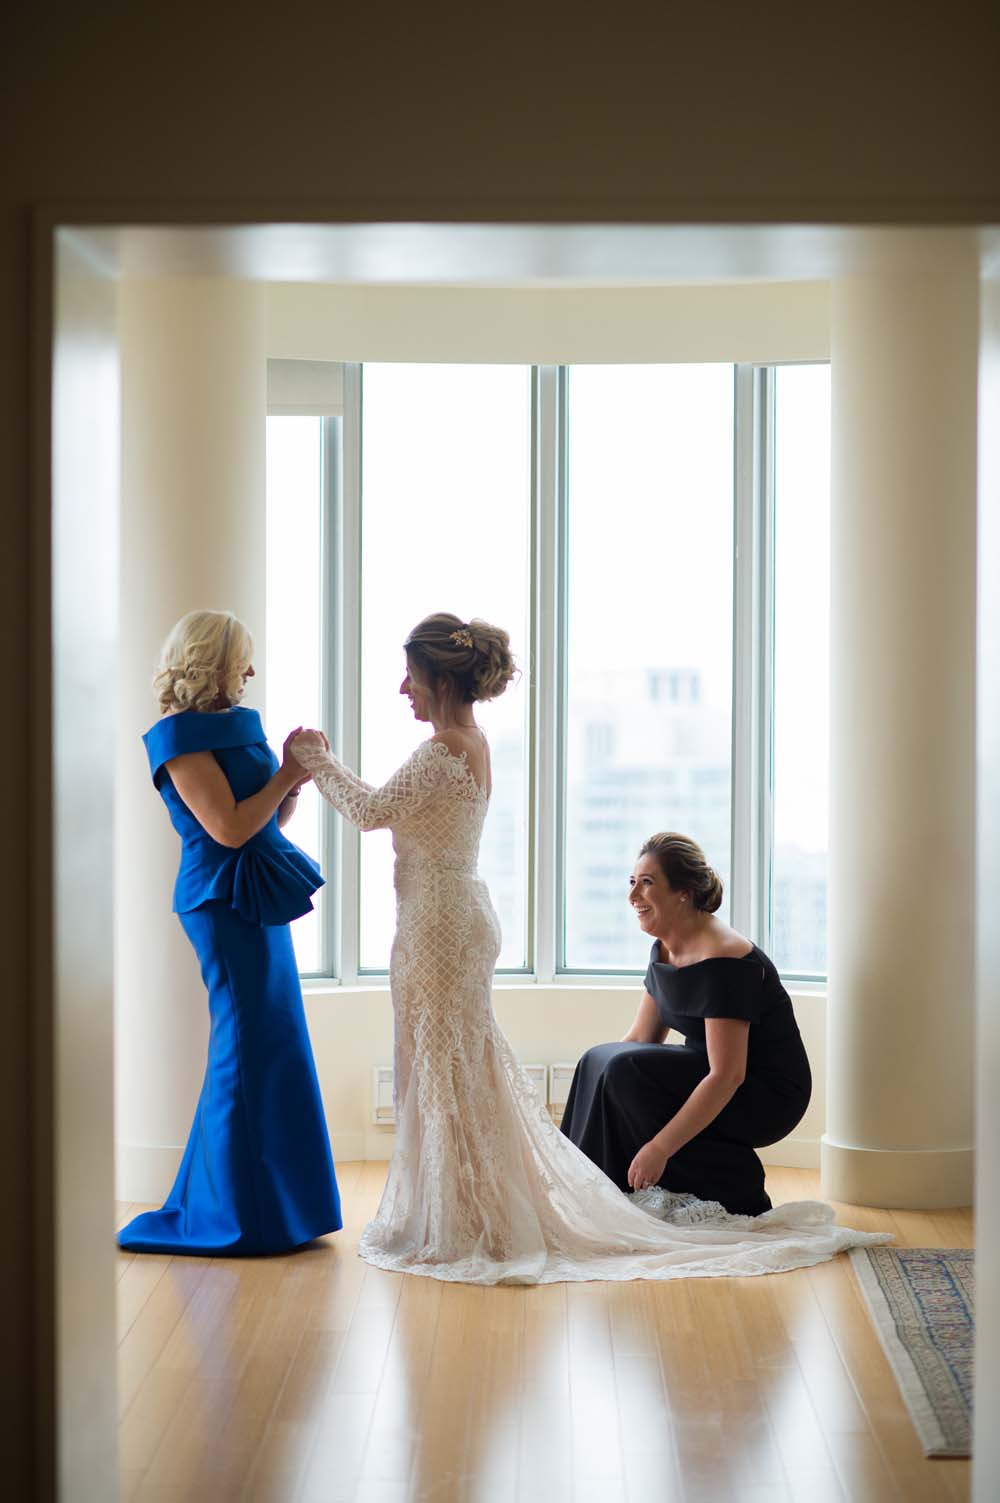 A Classic Vintage inspired Wedding at the One King West in Toronto - Mother and Bride